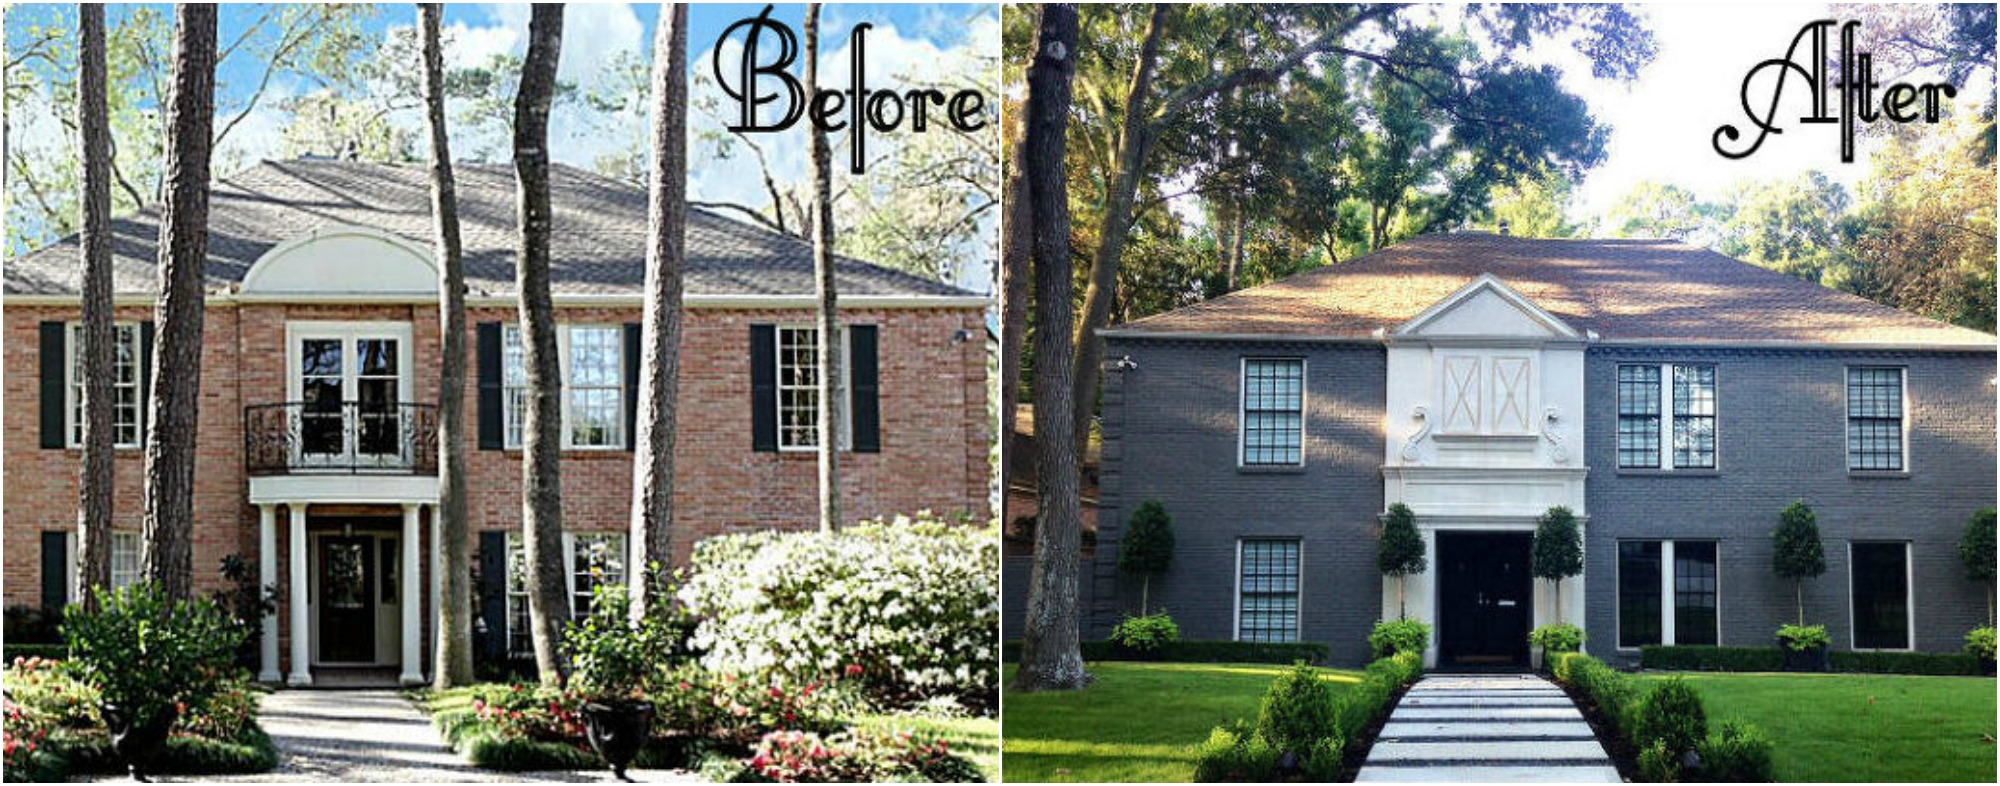 Home Makeovers 9 incredible home exterior makeovers - coldwell banker blue matter